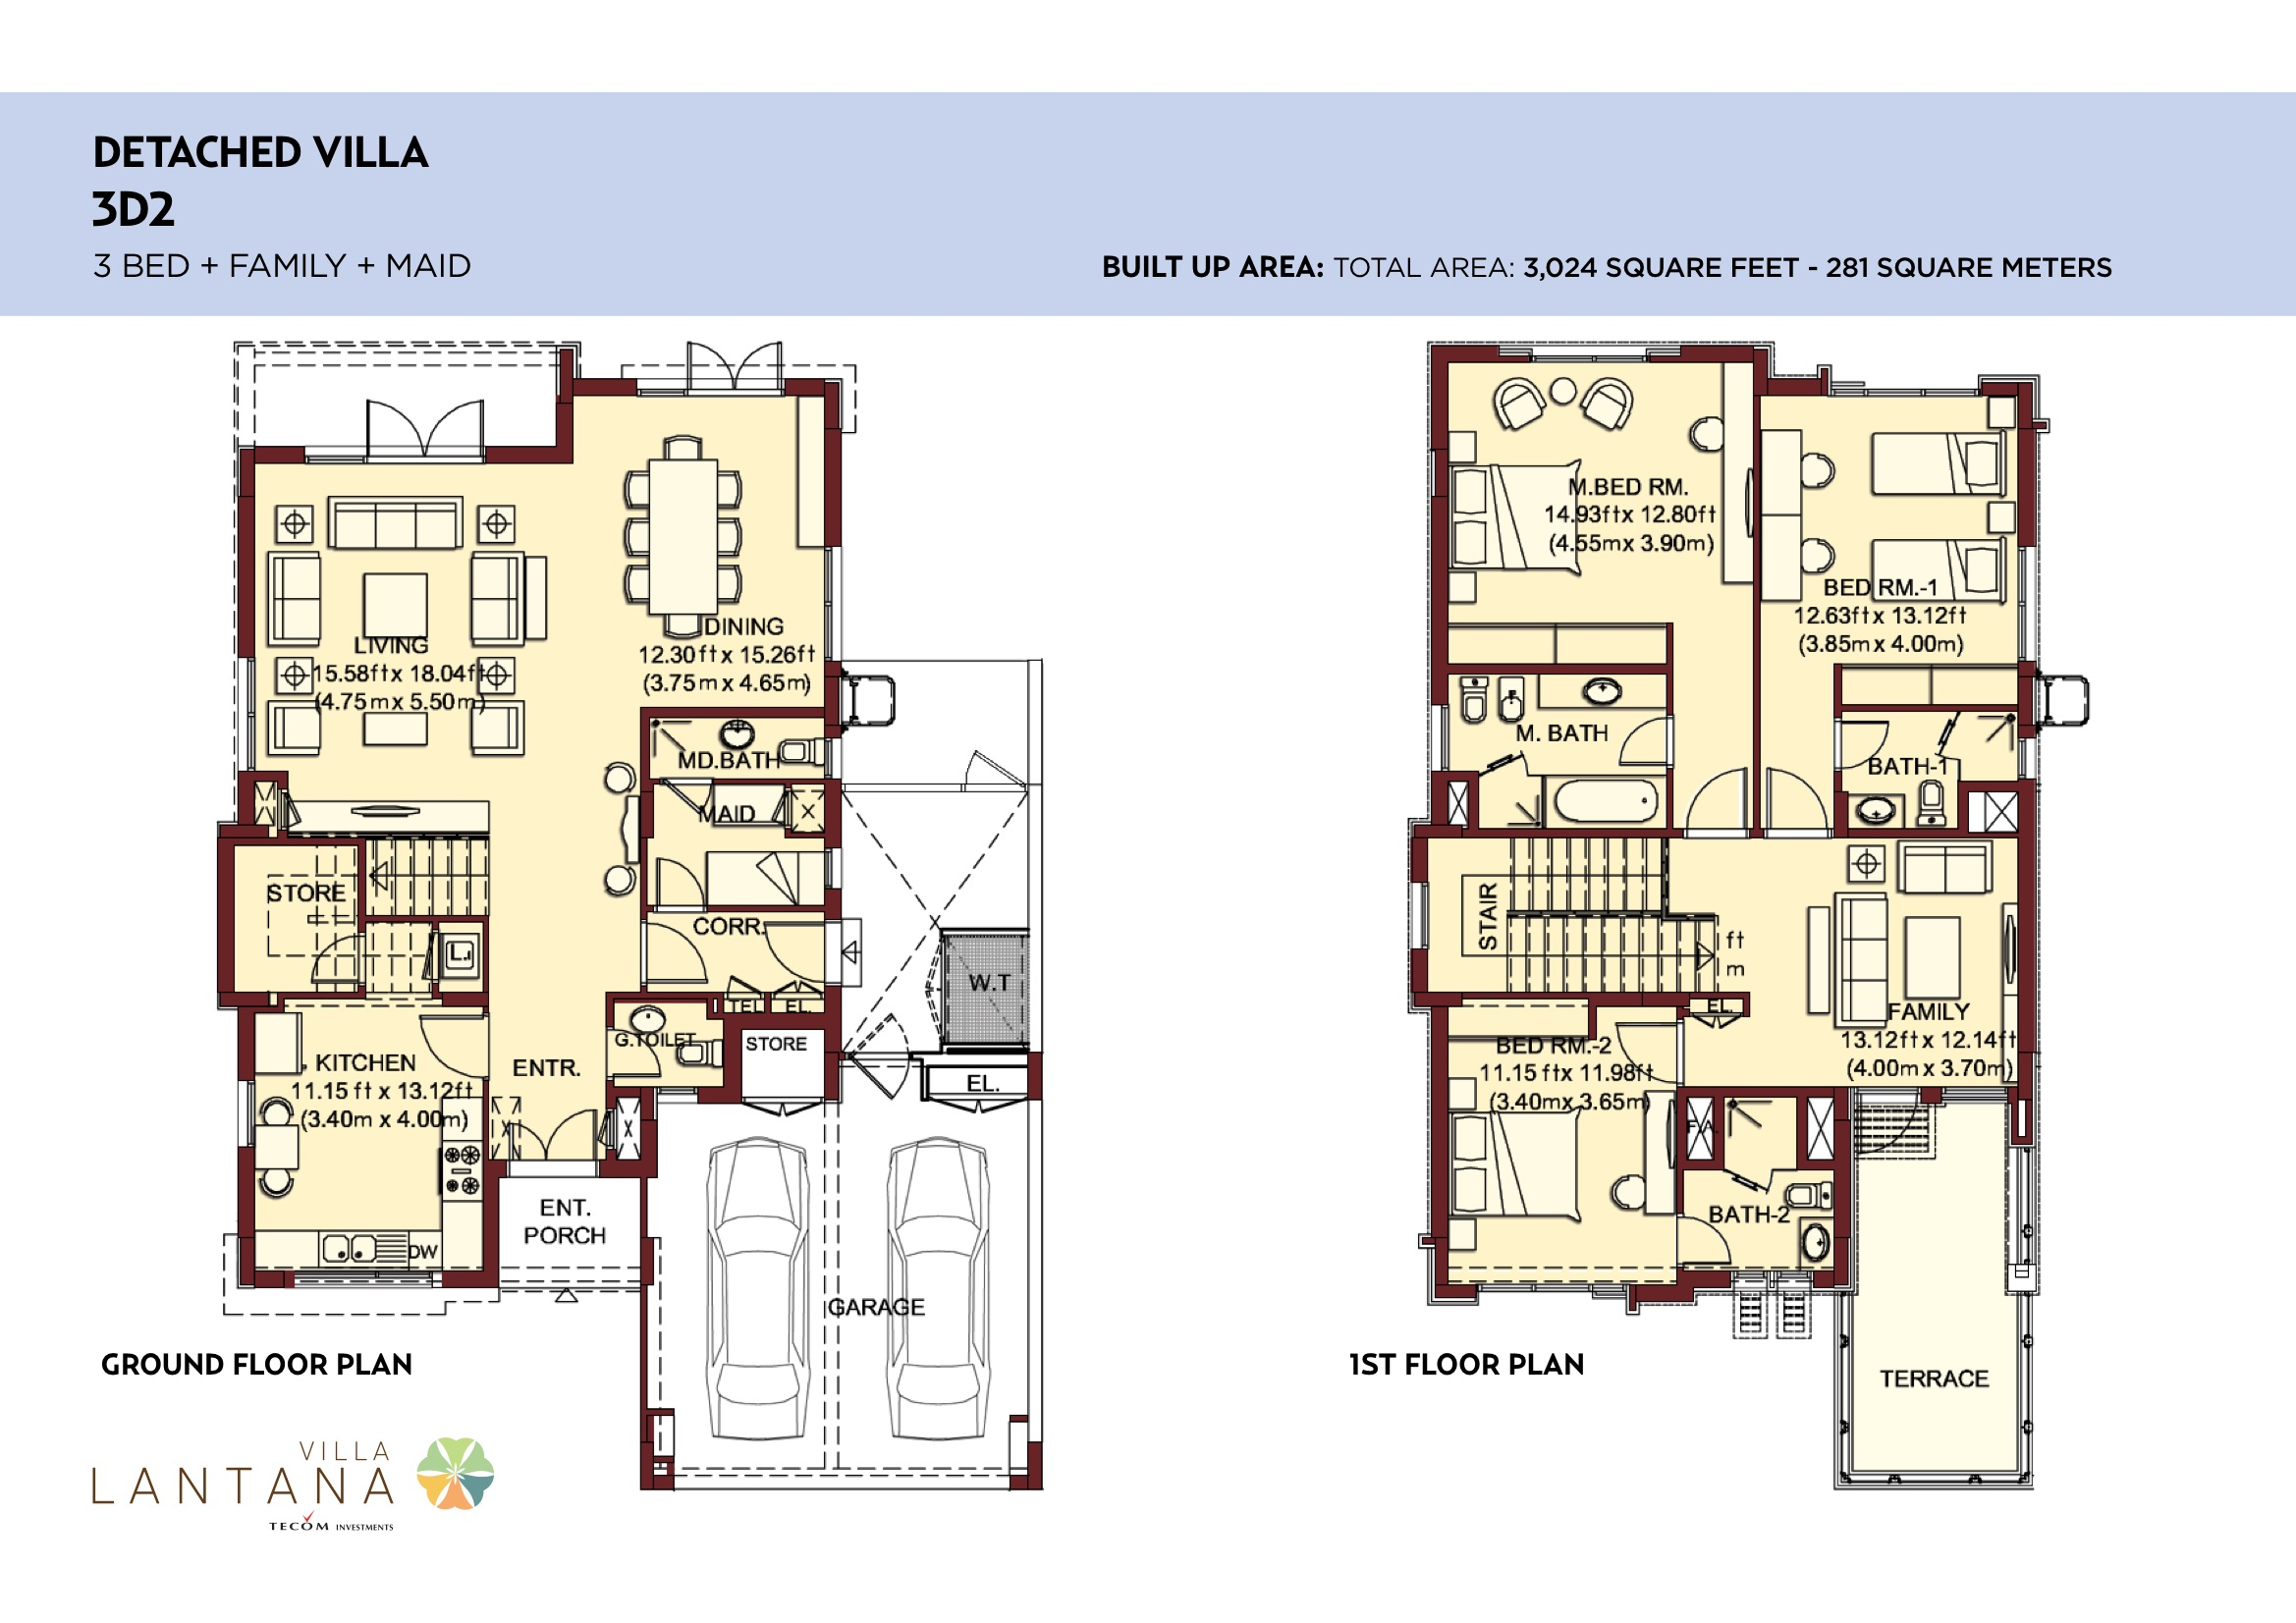 Villa lantana floorplans jumeirah village circle jvc dubai for Plan villa r 2